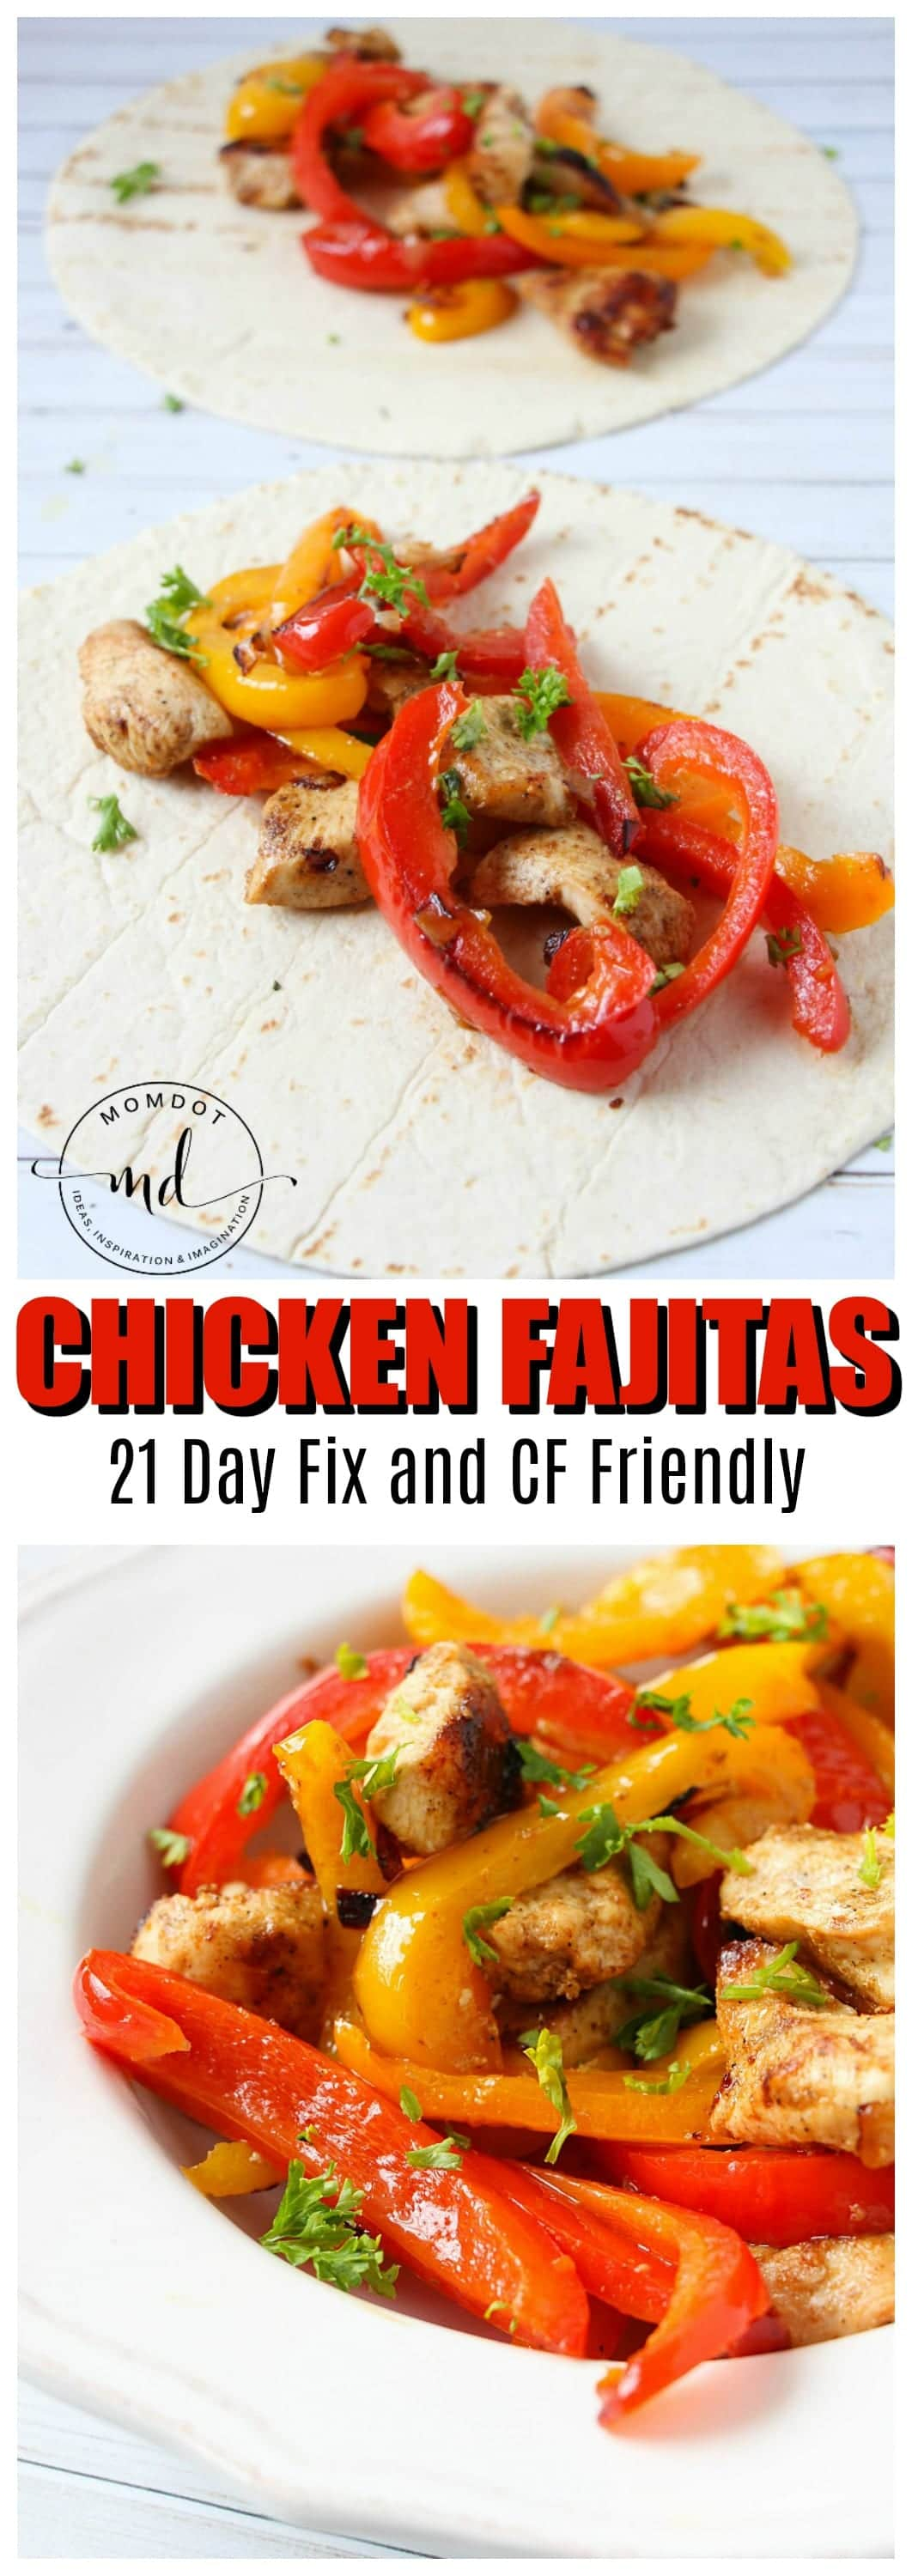 Simple chicken fajita recipe! In under 20 minutes, these perfectly seasoned chickens pair well with veggies for a dinner everyone will love. Without shell, carb free and 21 day fix approved